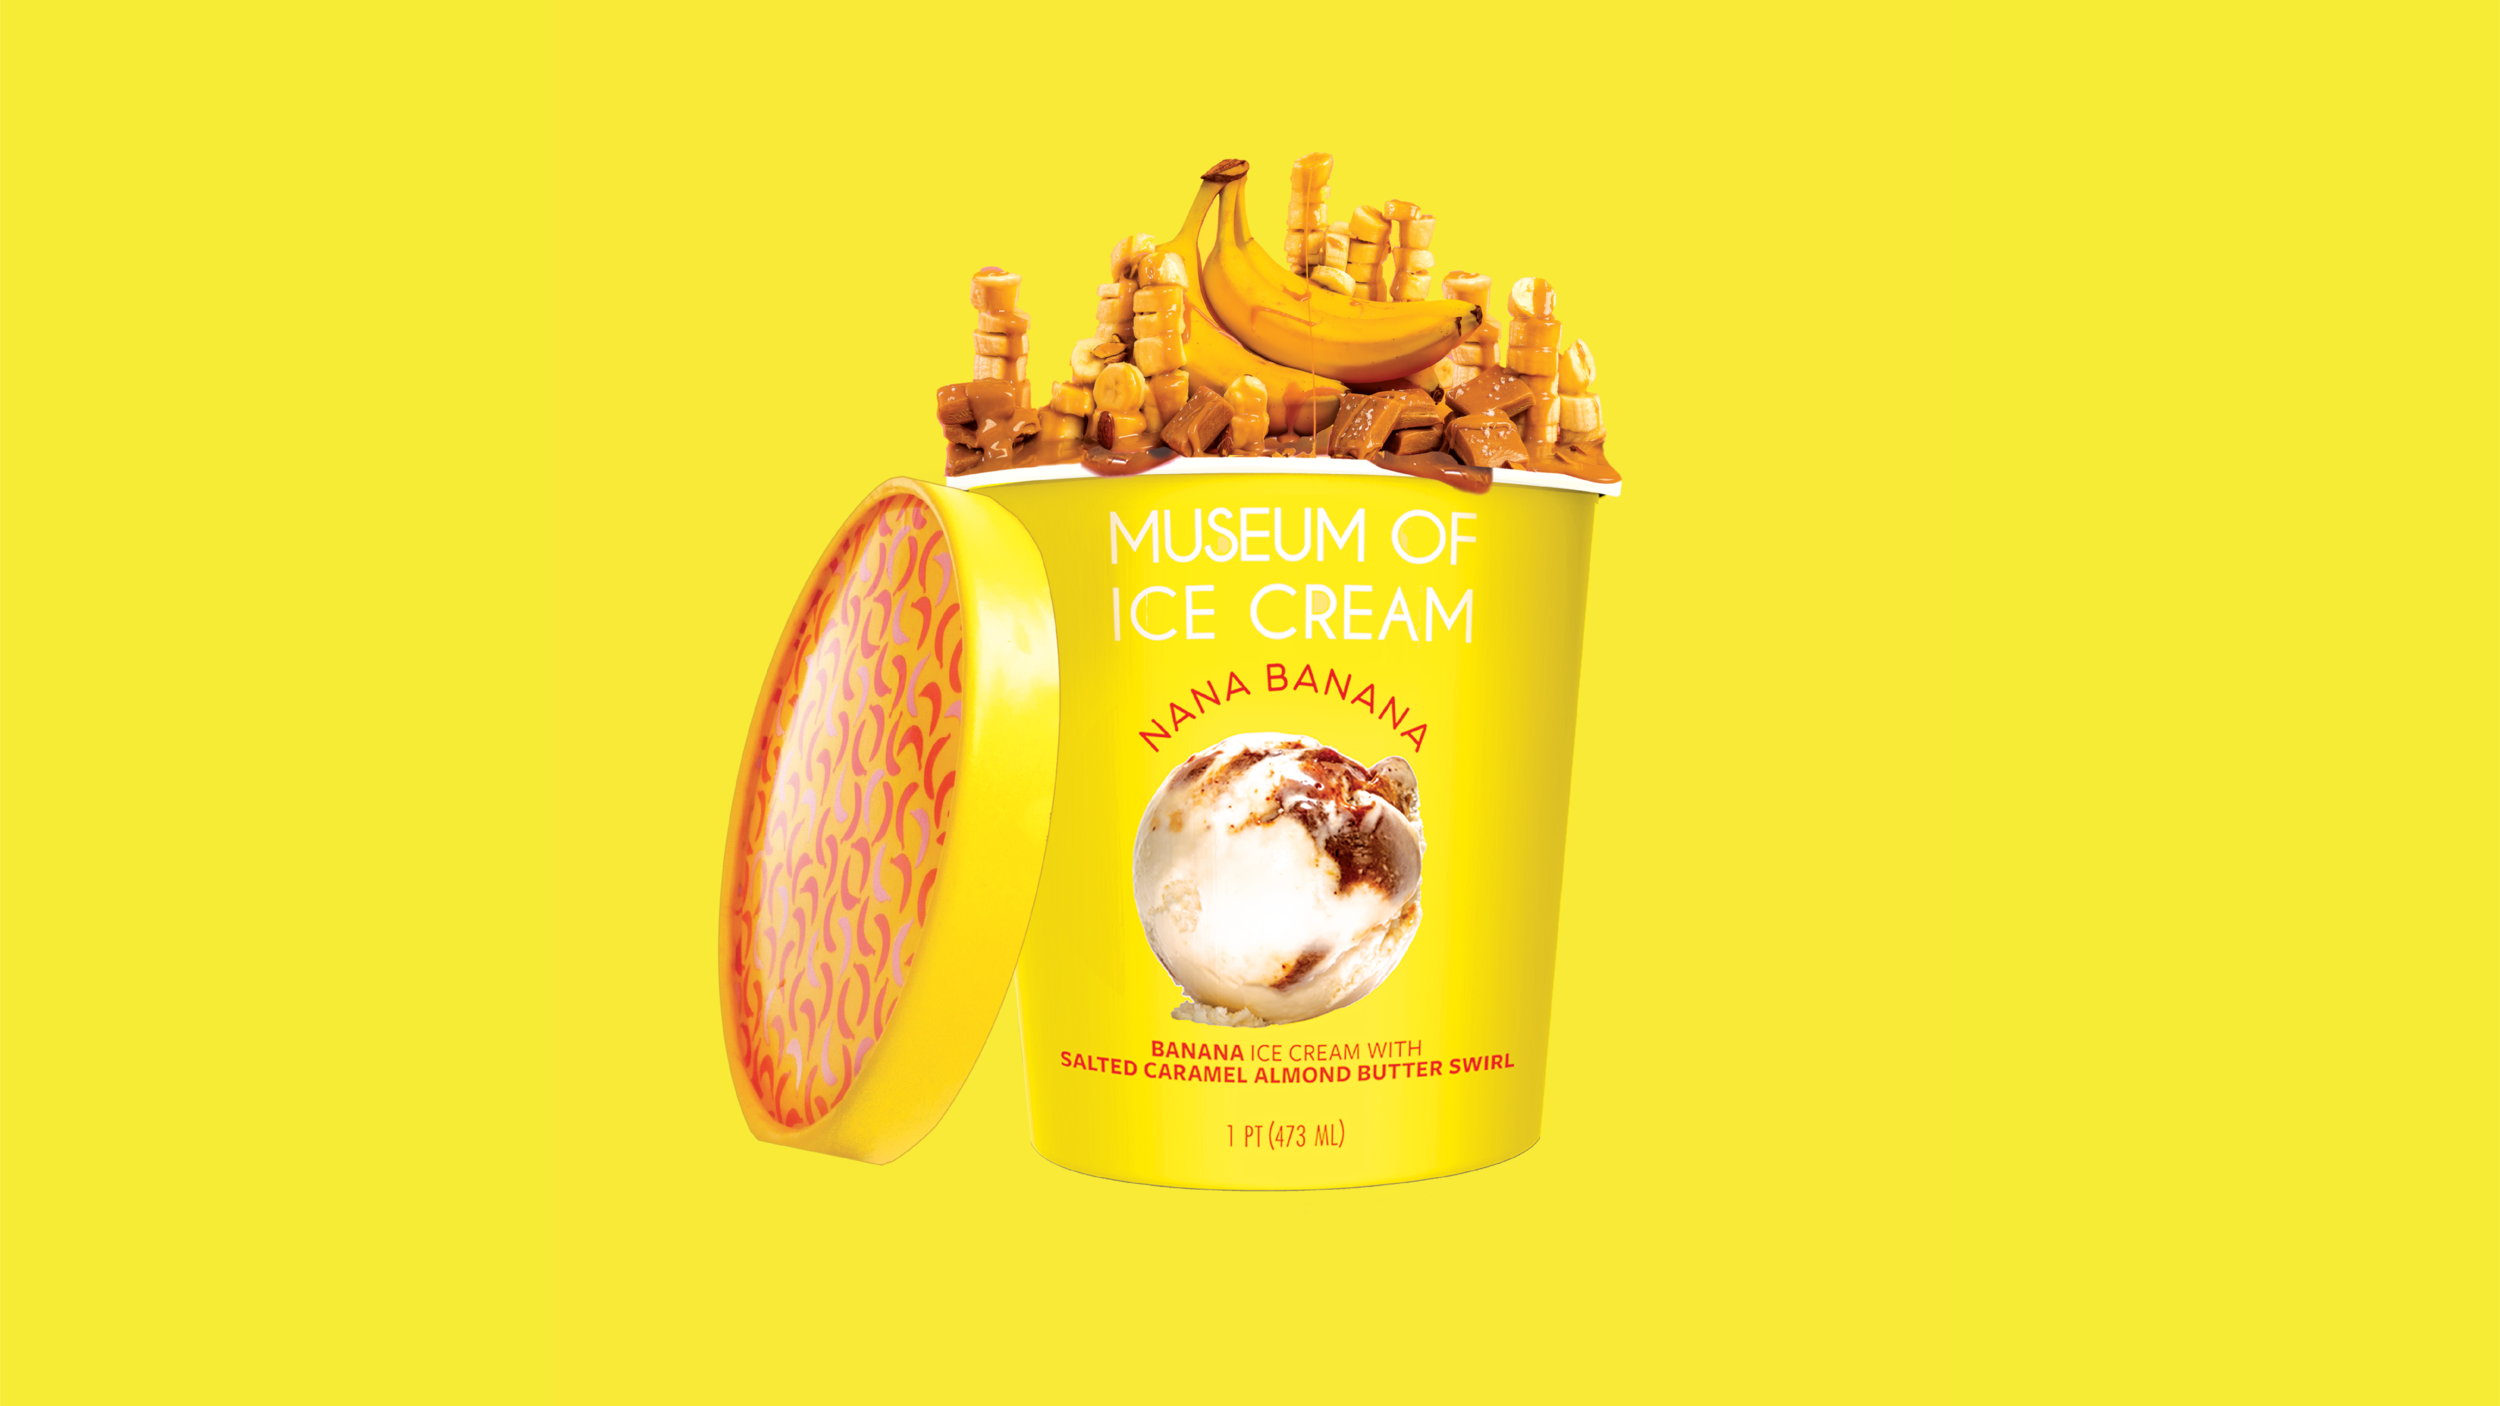 Museum-of-ice-cream_ice-cream_nana-banana.png